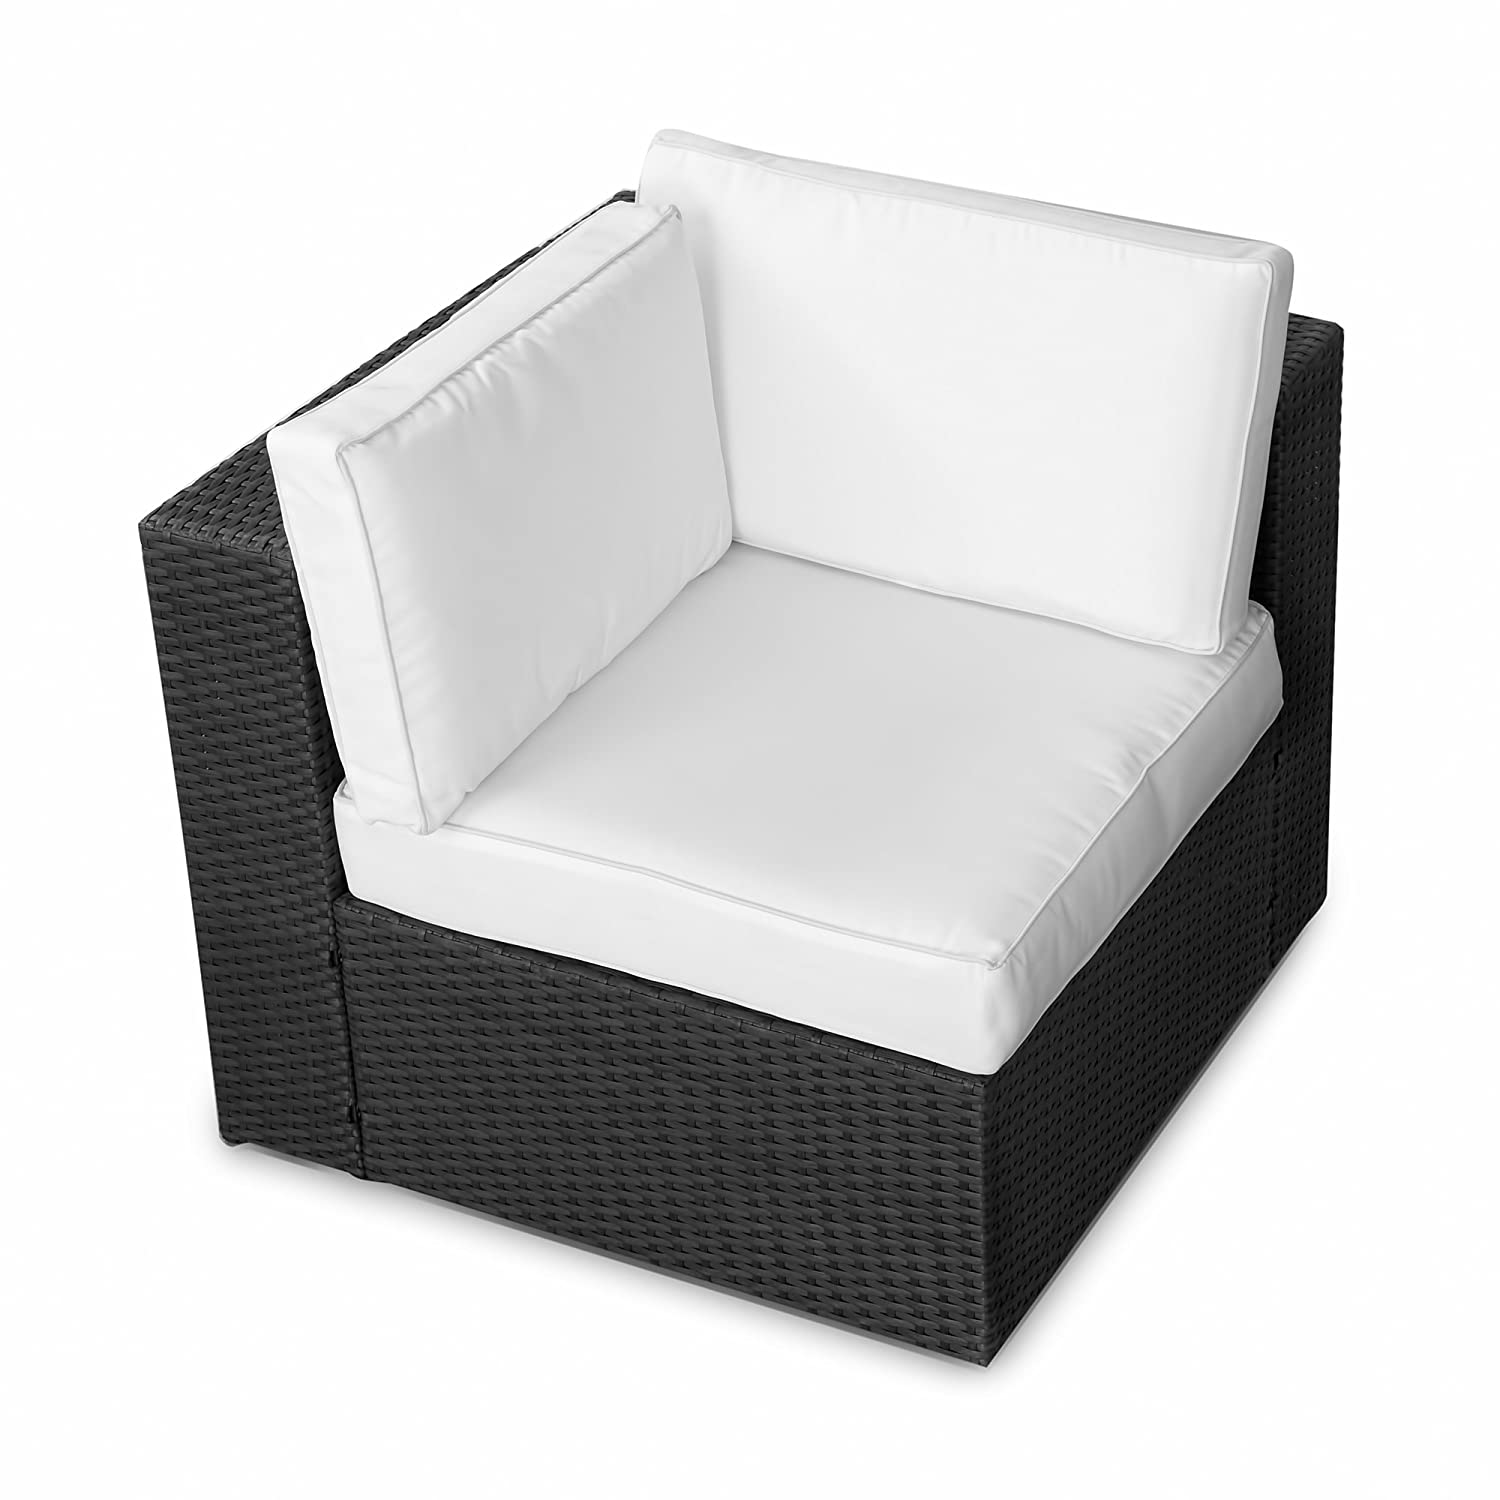 Amazon.de: (1er) Polyrattan Lounge Möbel Eck Sessel schwarz ...